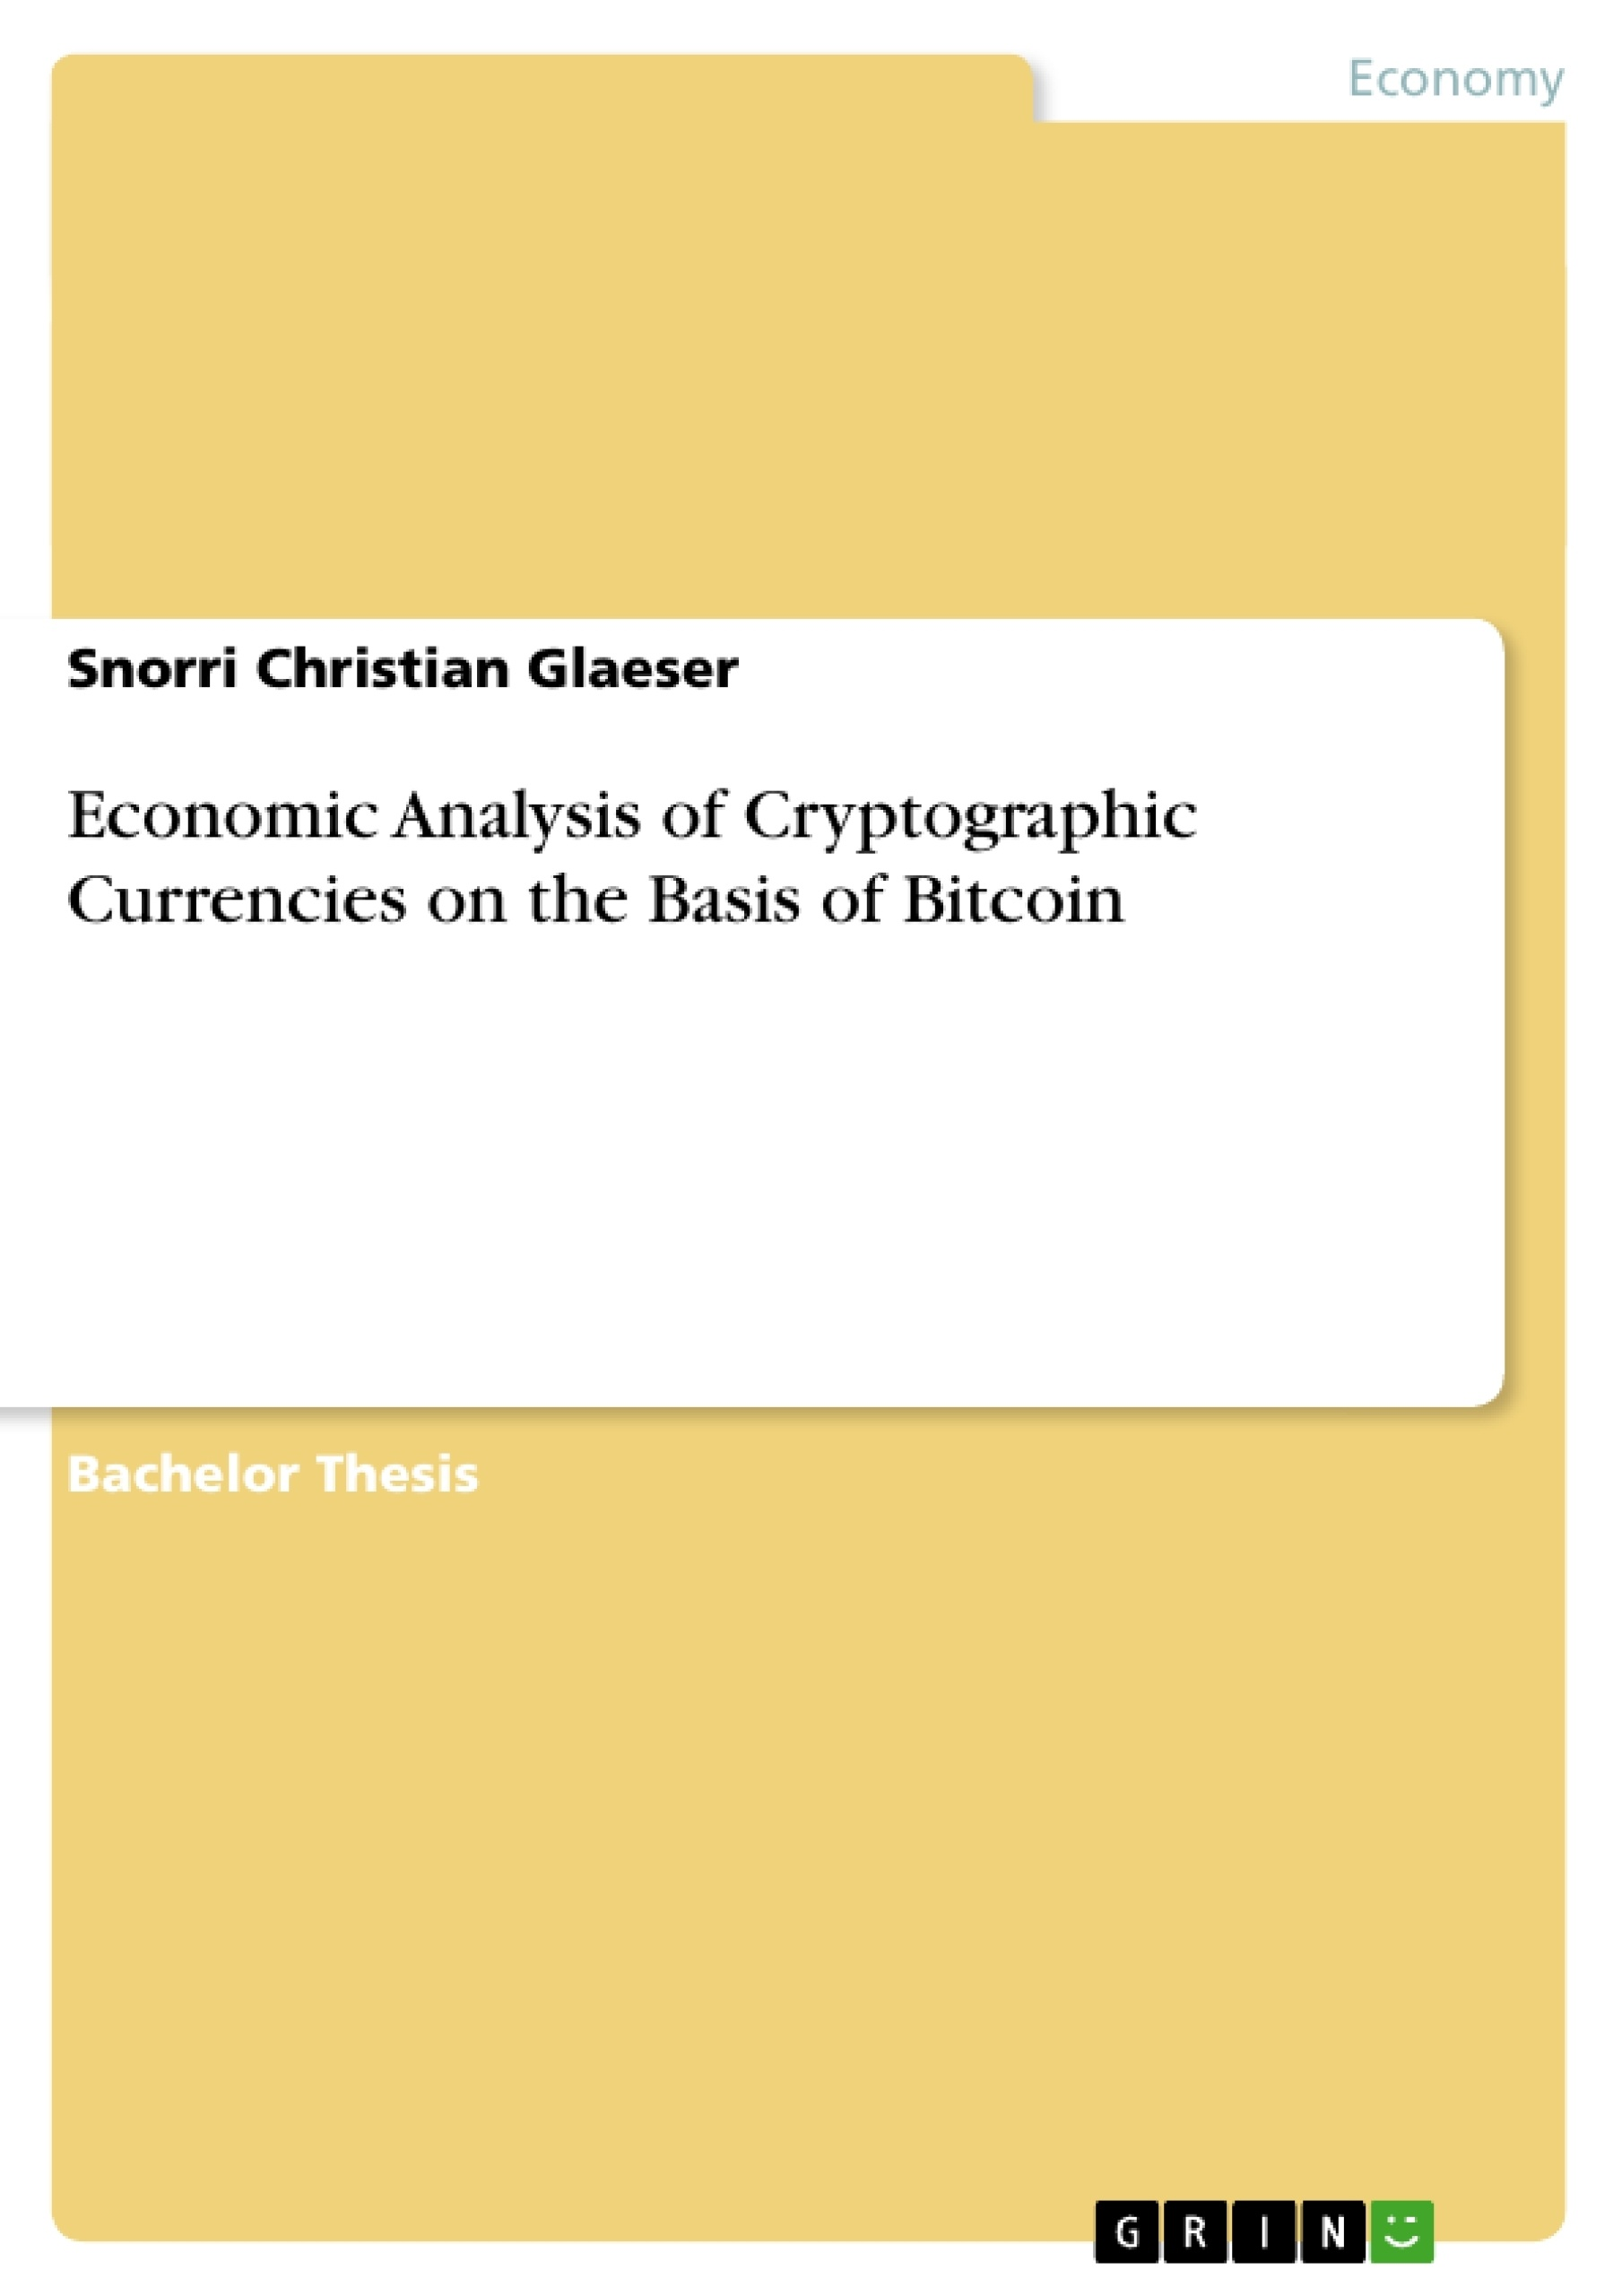 Title: Economic Analysis of Cryptographic Currencies on the Basis of Bitcoin